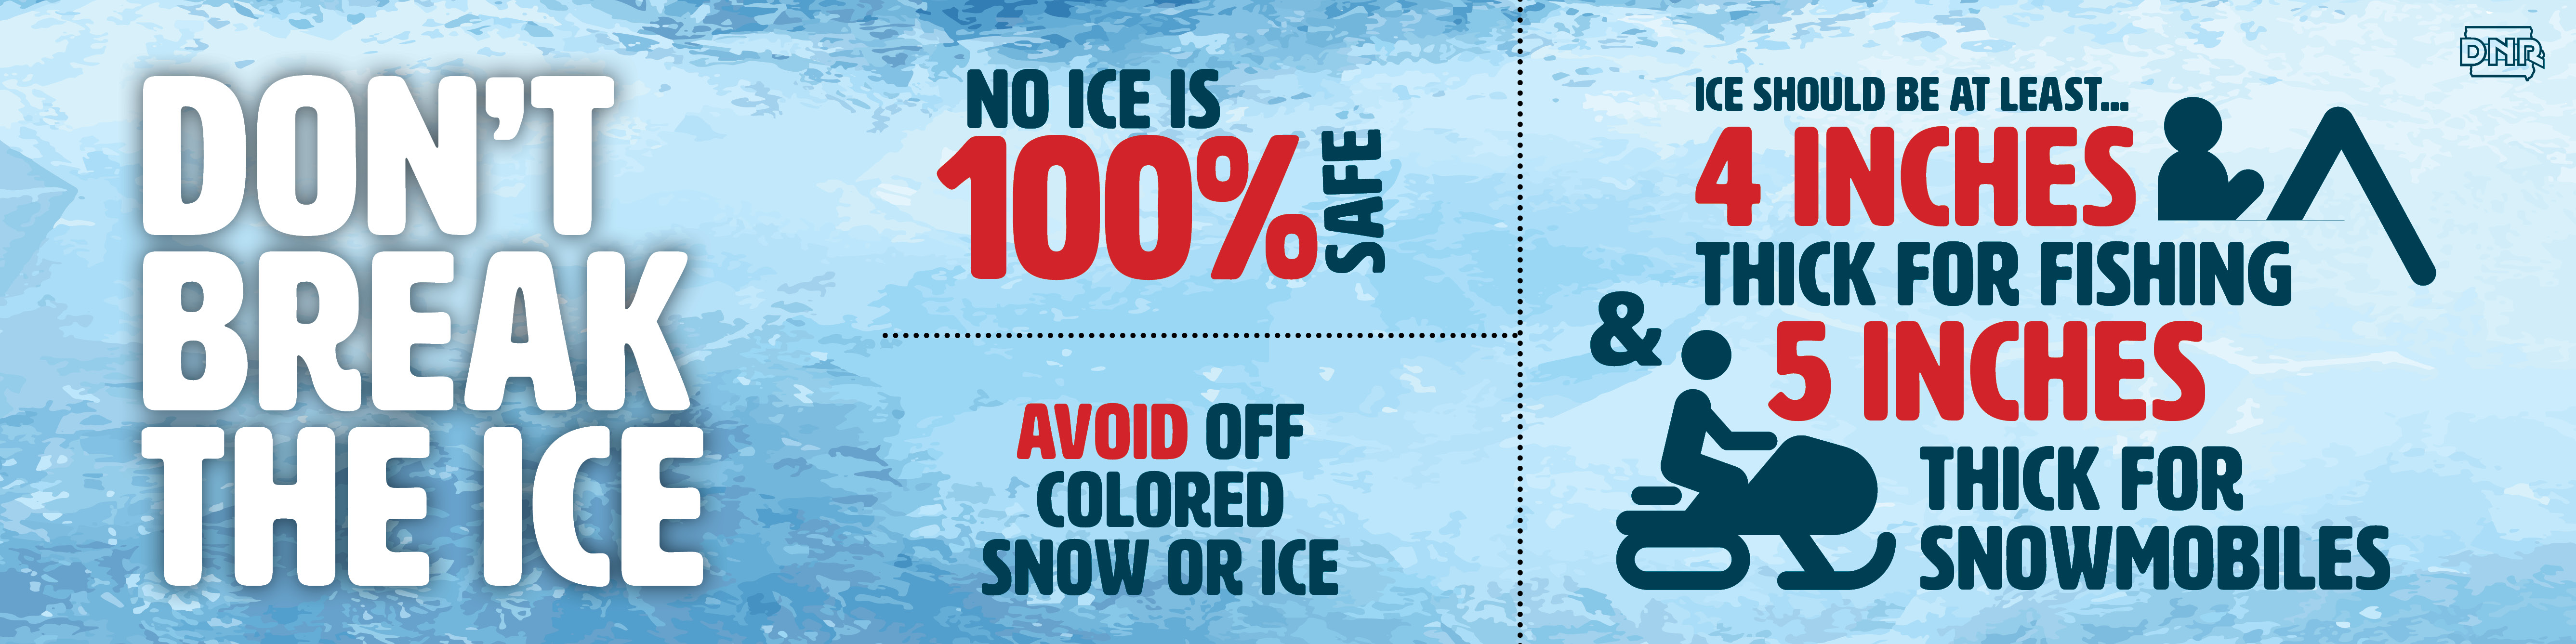 Be careful as no ice is 100% safe